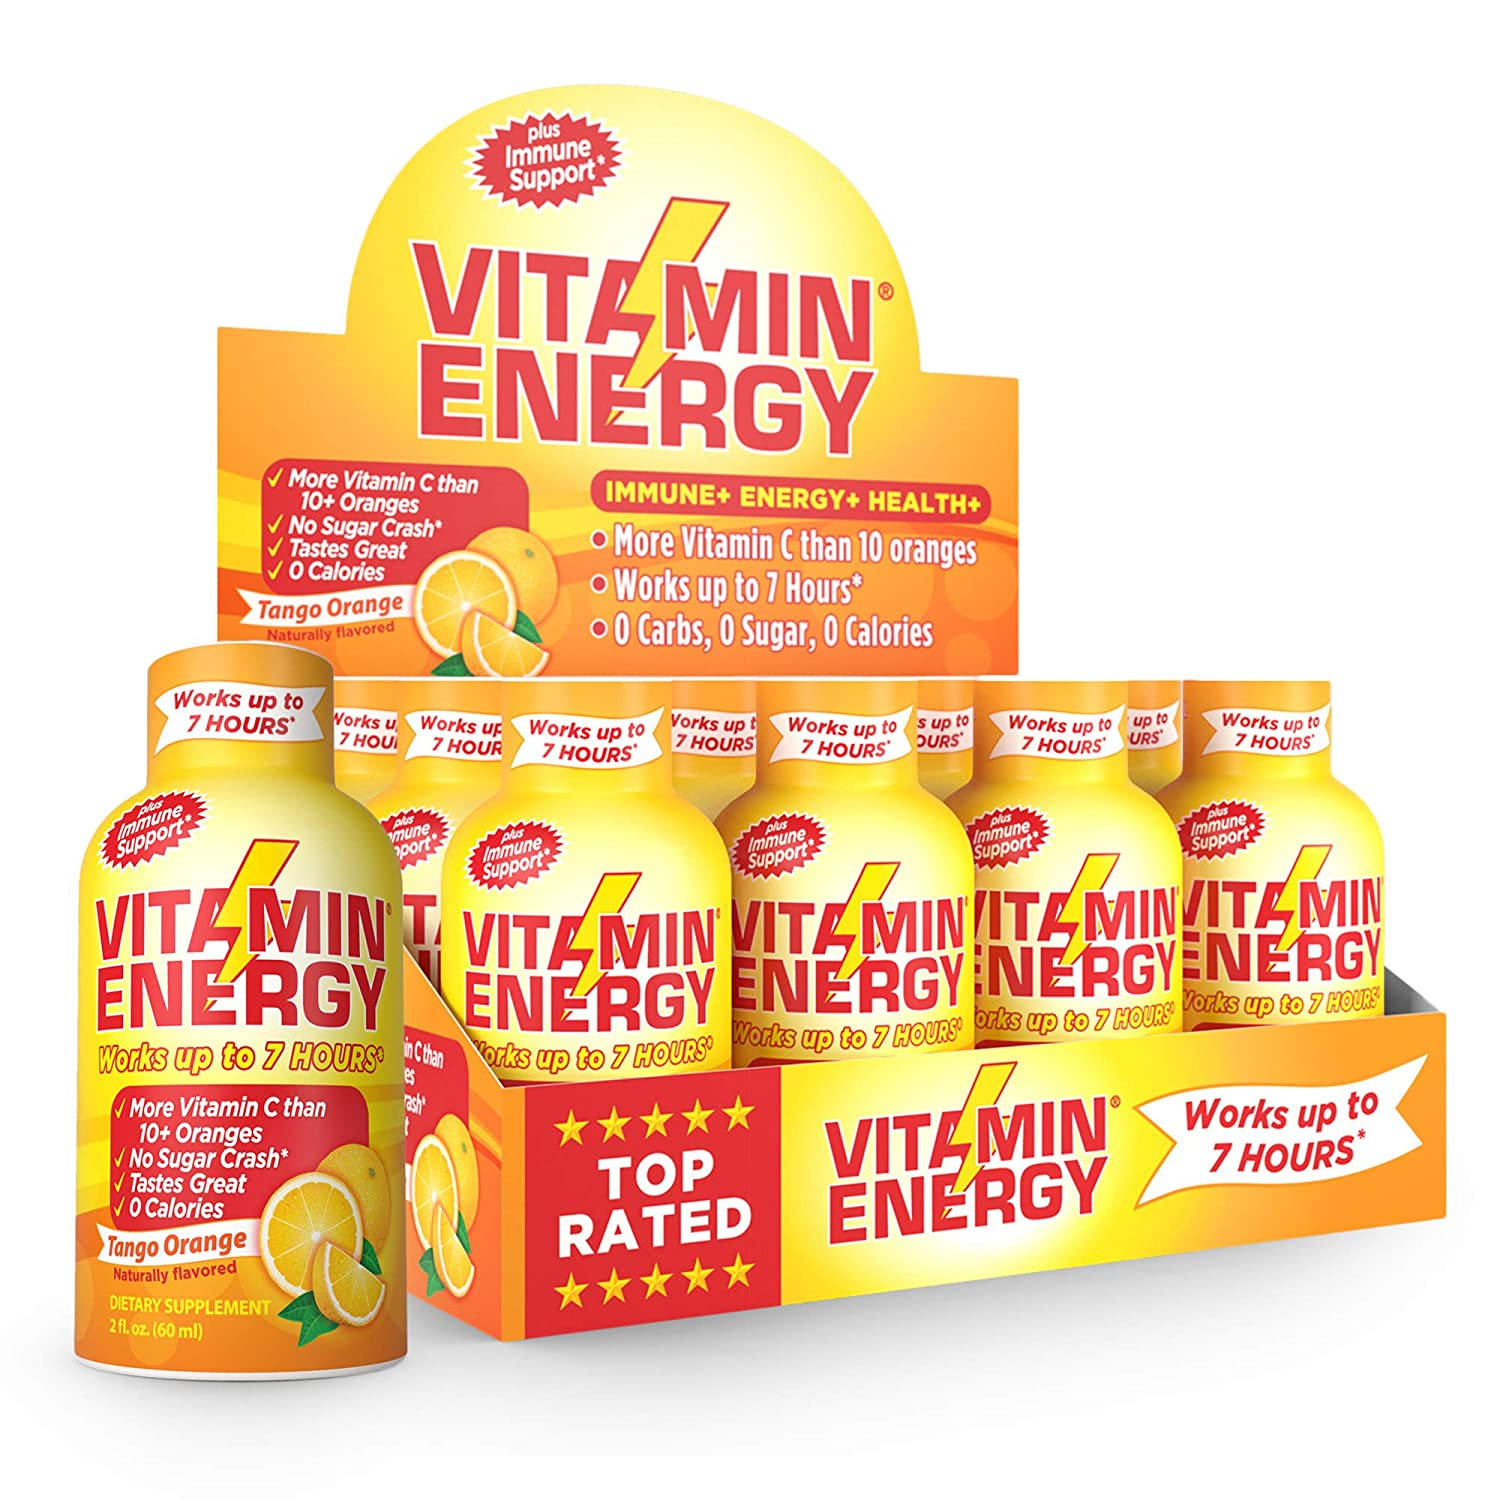 Vitamins For Energy >> Vitamin Energy Shots Up To 7 Hours Of Energy More Vitamin C Than 10 Oranges 0 Calories 12